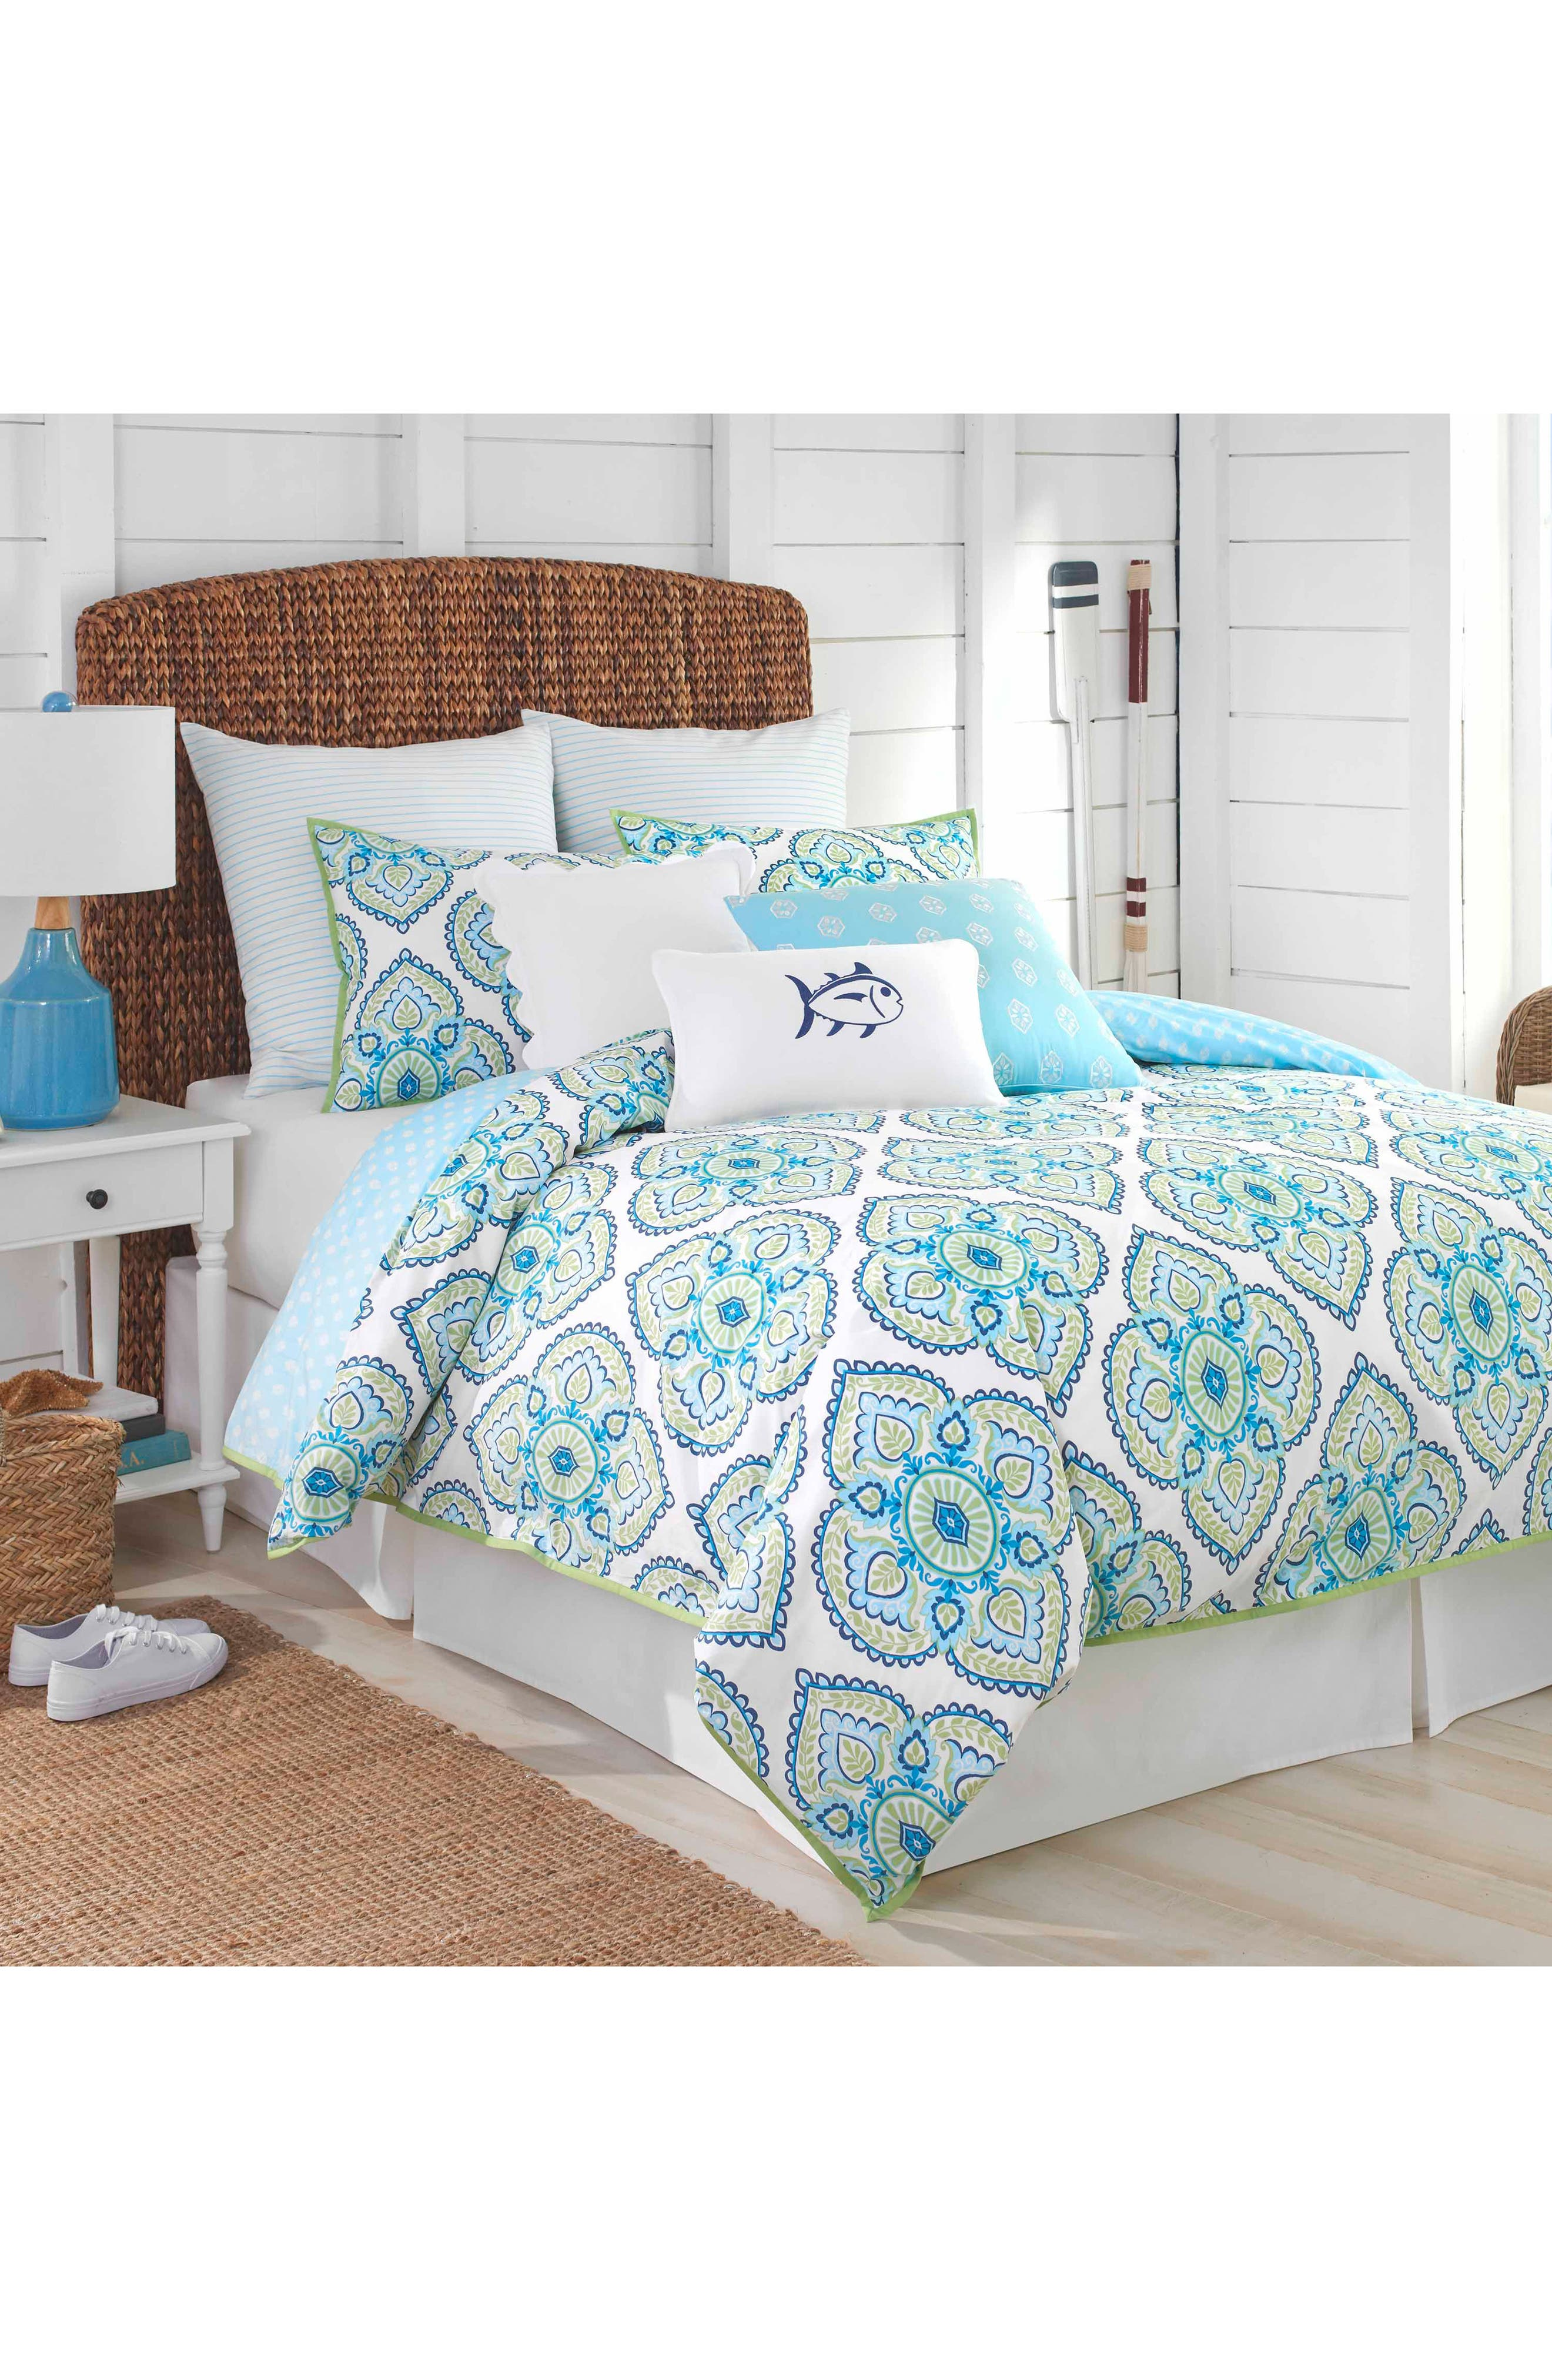 Summerville Comforter, Sham & Bed Skirt Set,                         Main,                         color, Blue/ Multi